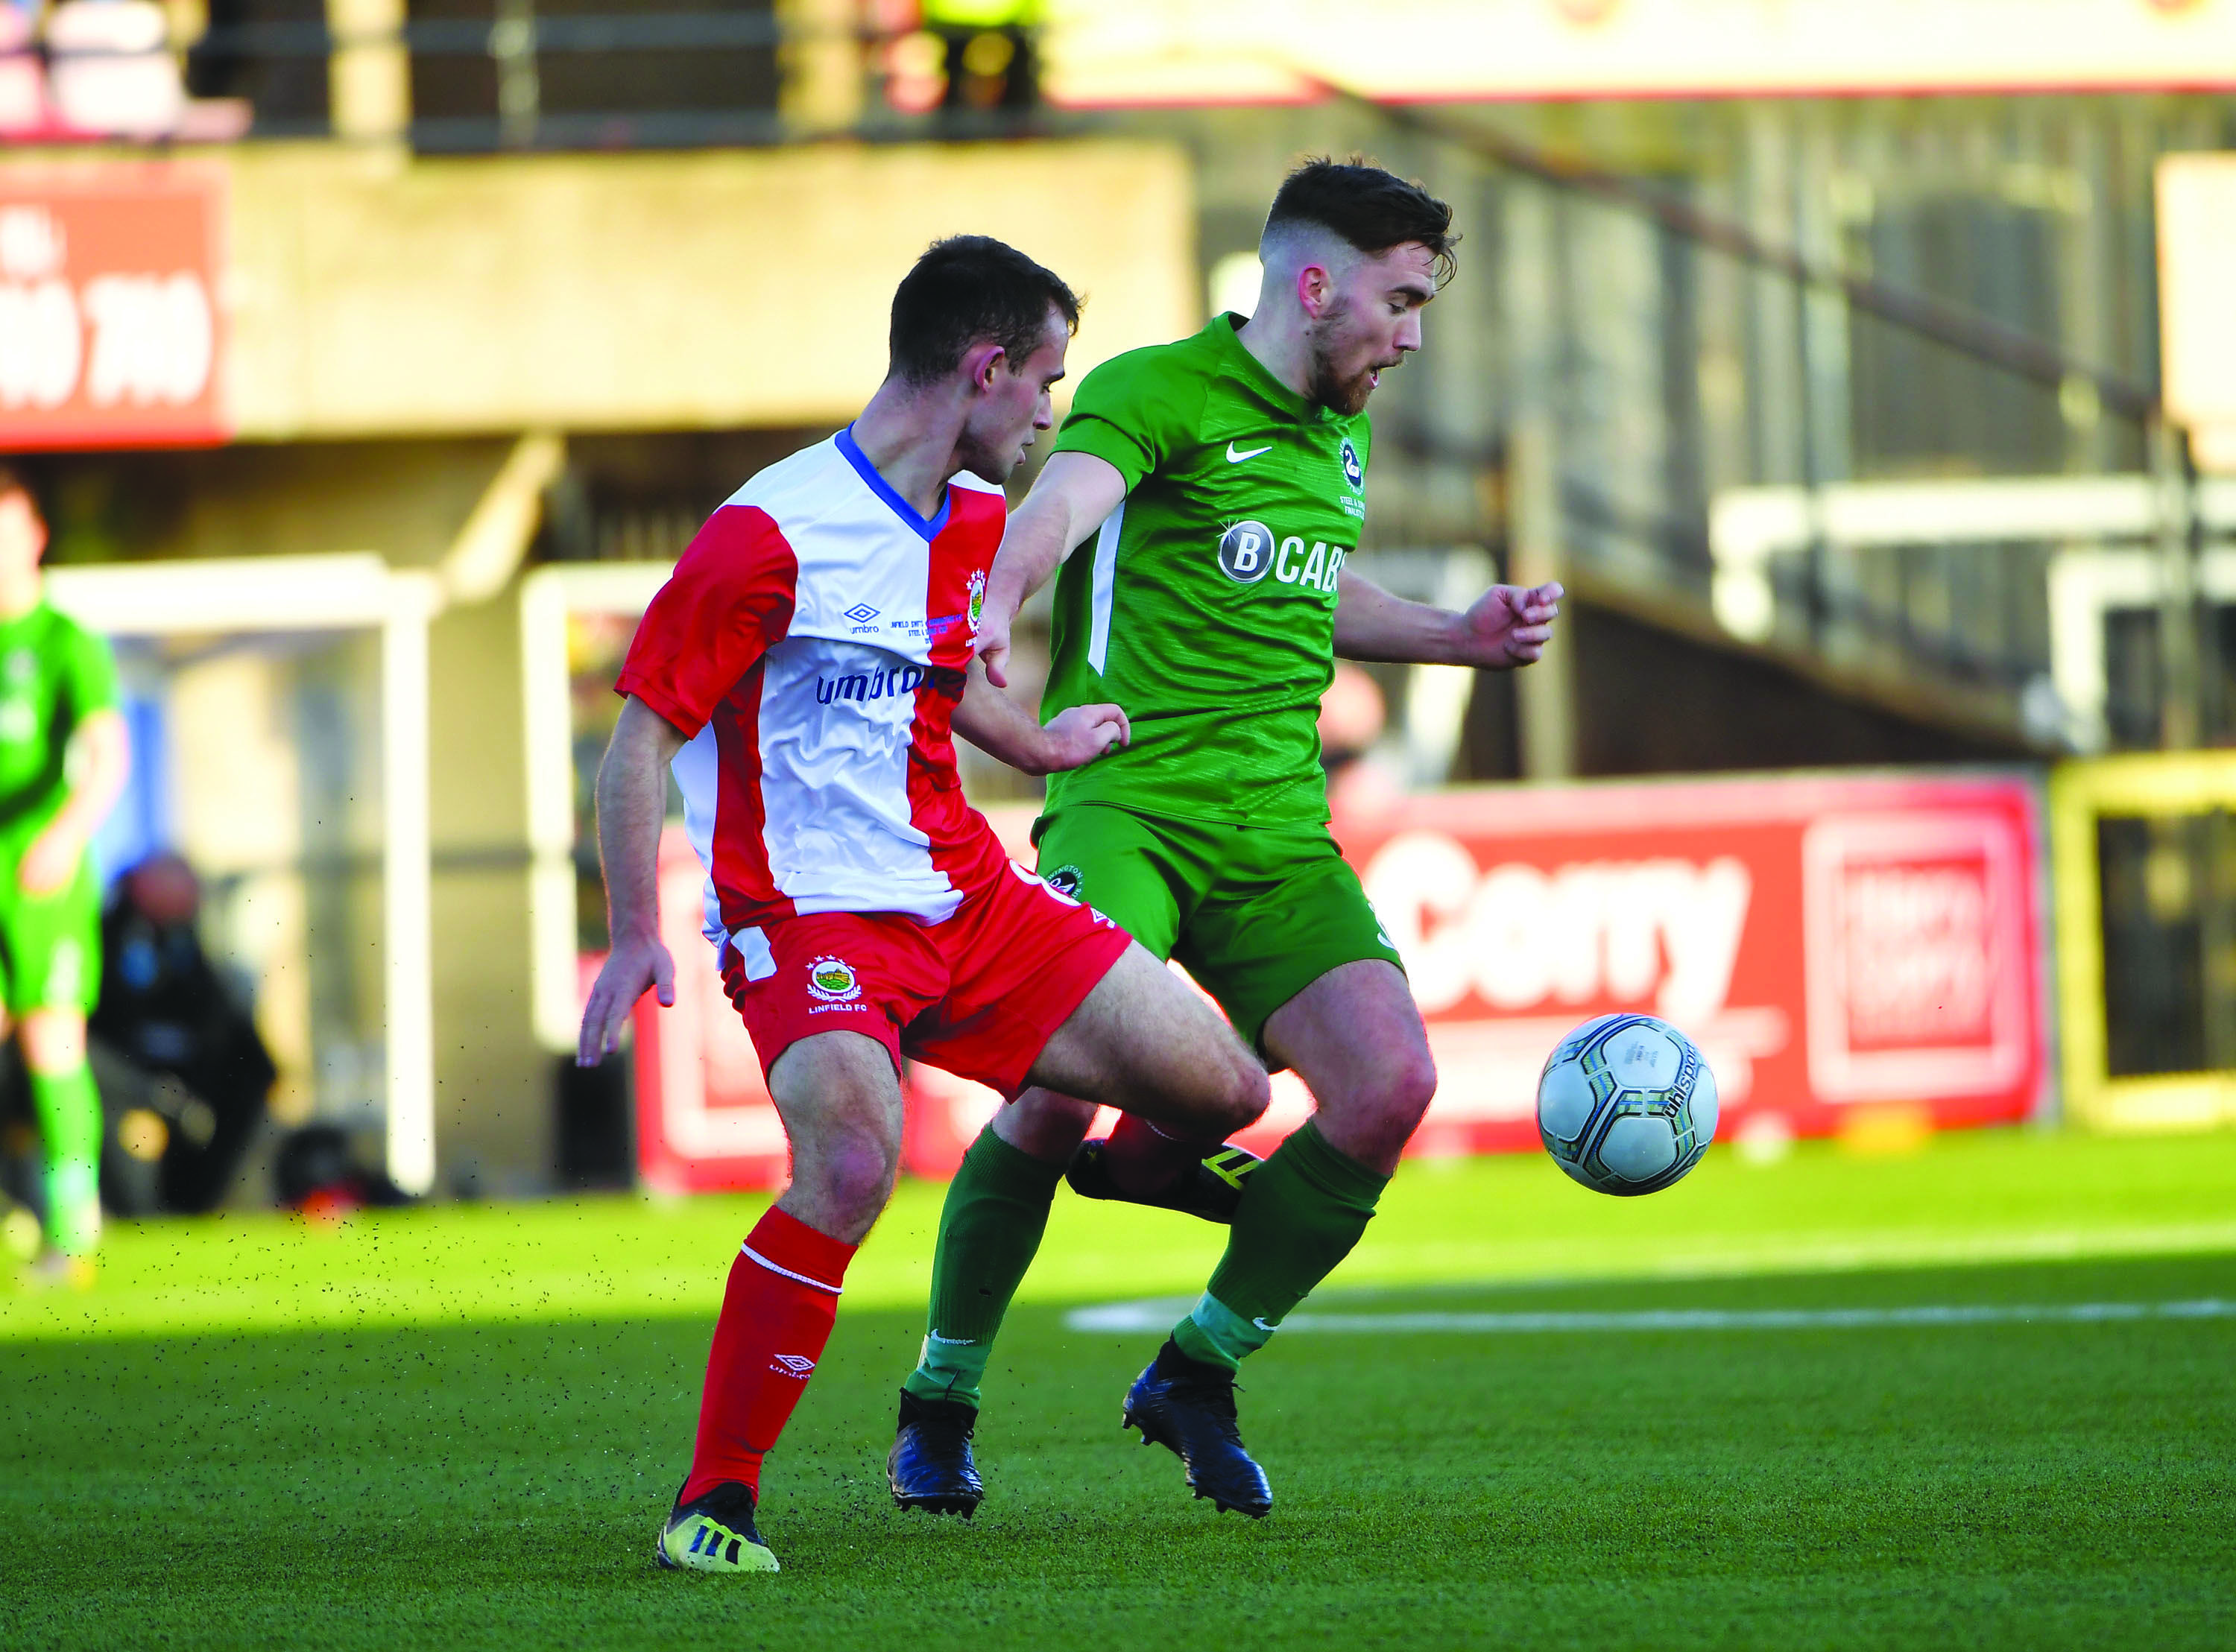 Newington reached last year's Steel and Sons Cup final, but manager Conor Crossan predicts it may not take place on its traditional slot of Christmas morning